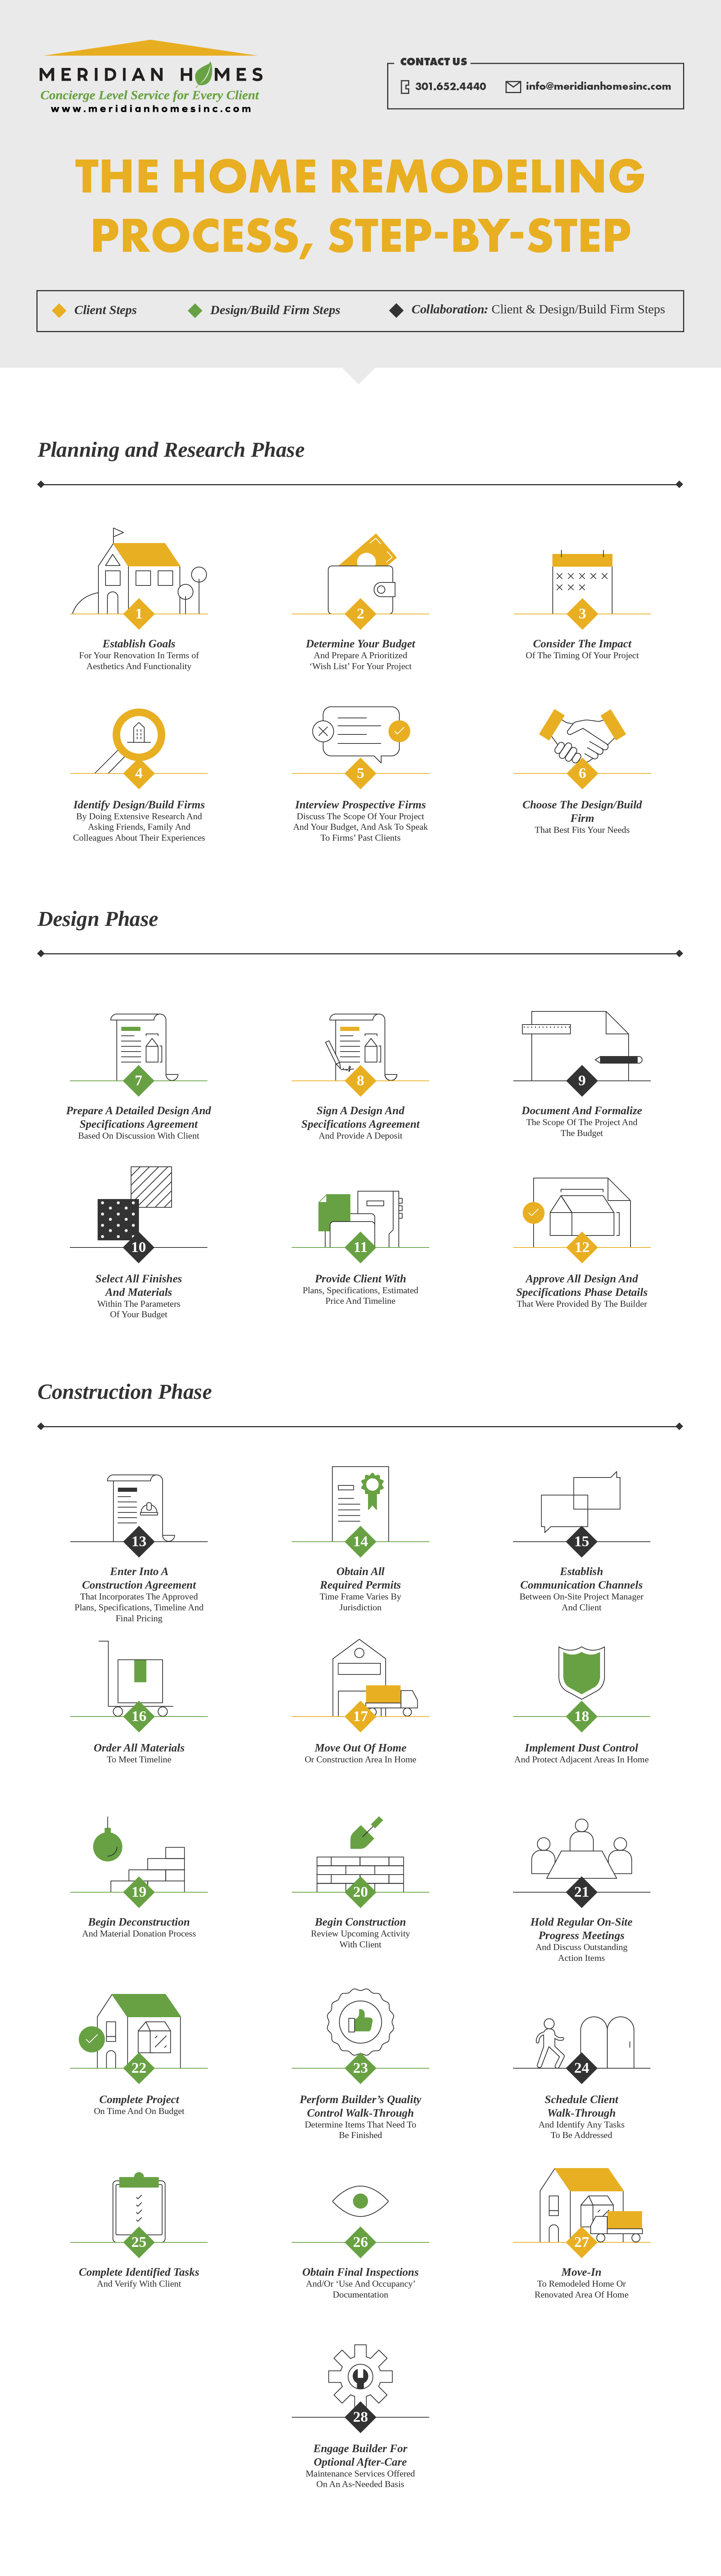 Meridian Homes - Remodeling Process Step By Step - Infographic